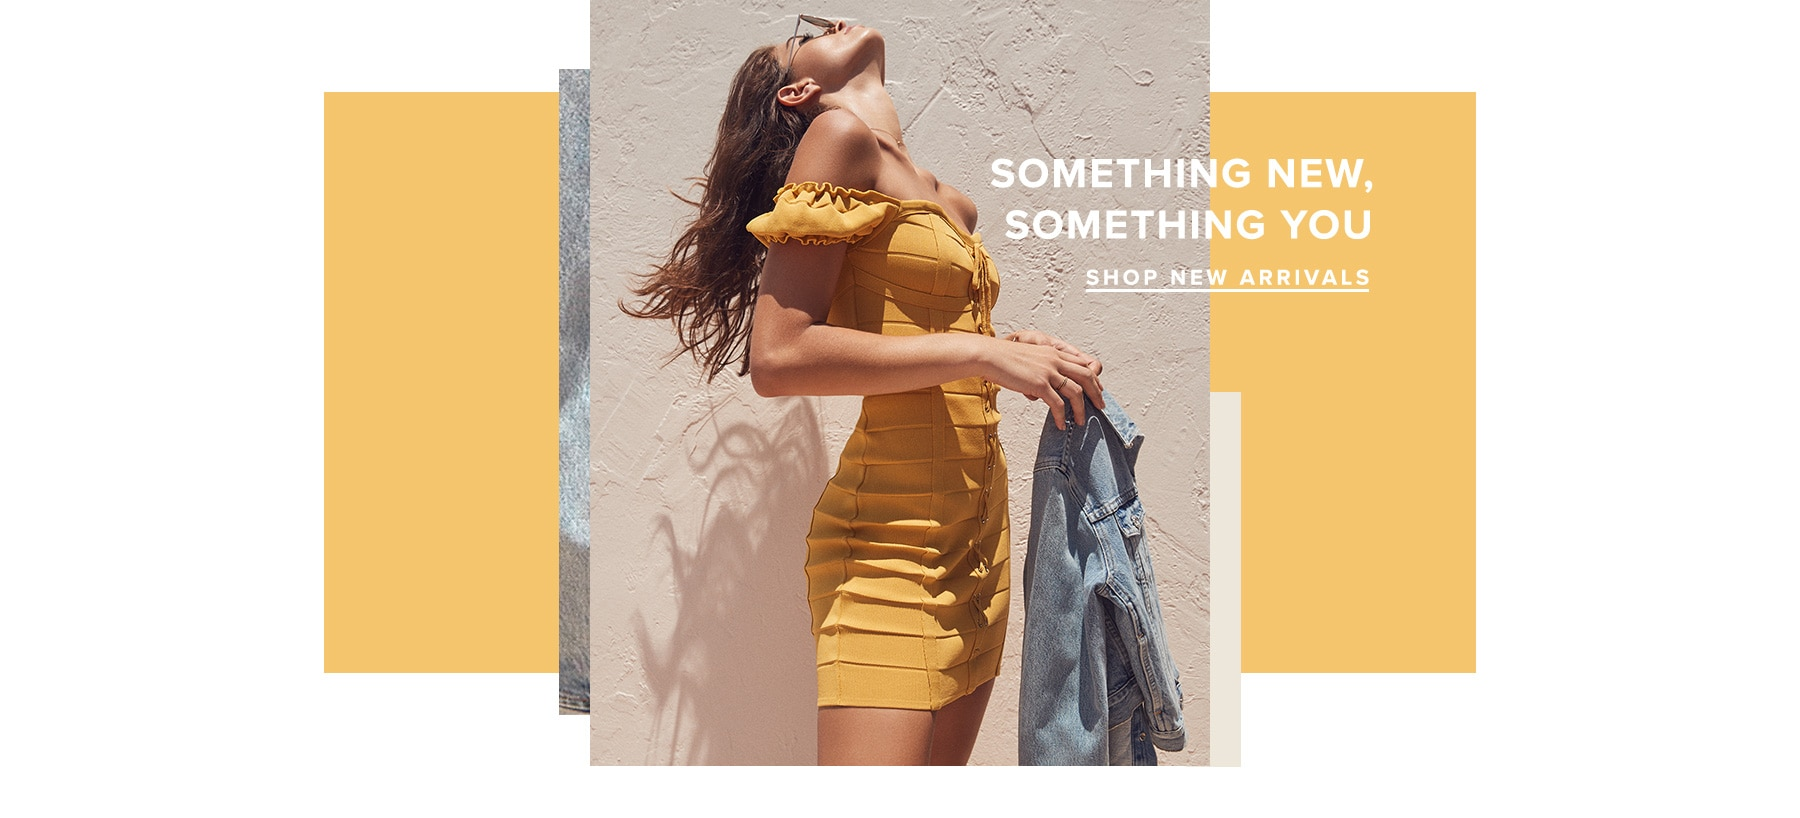 SOMETHING NEW, SOMETHING YOU. SHOP NEW ARRIVALS